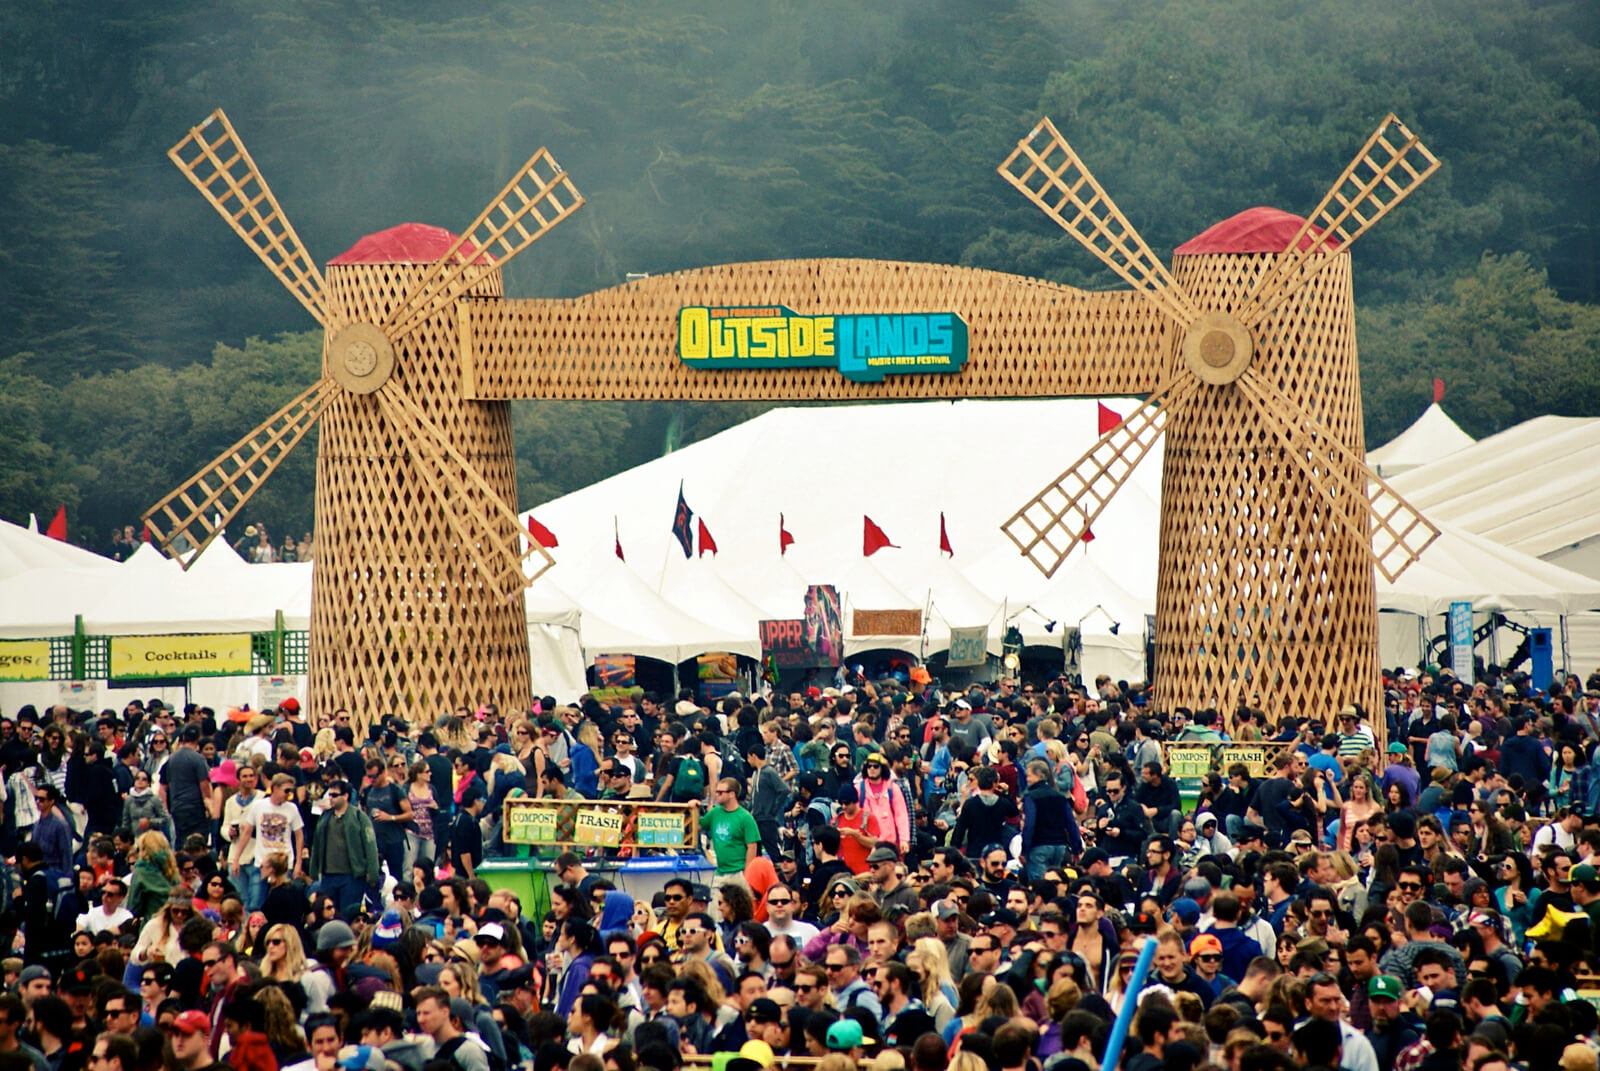 Outside Lands Festival scultpure